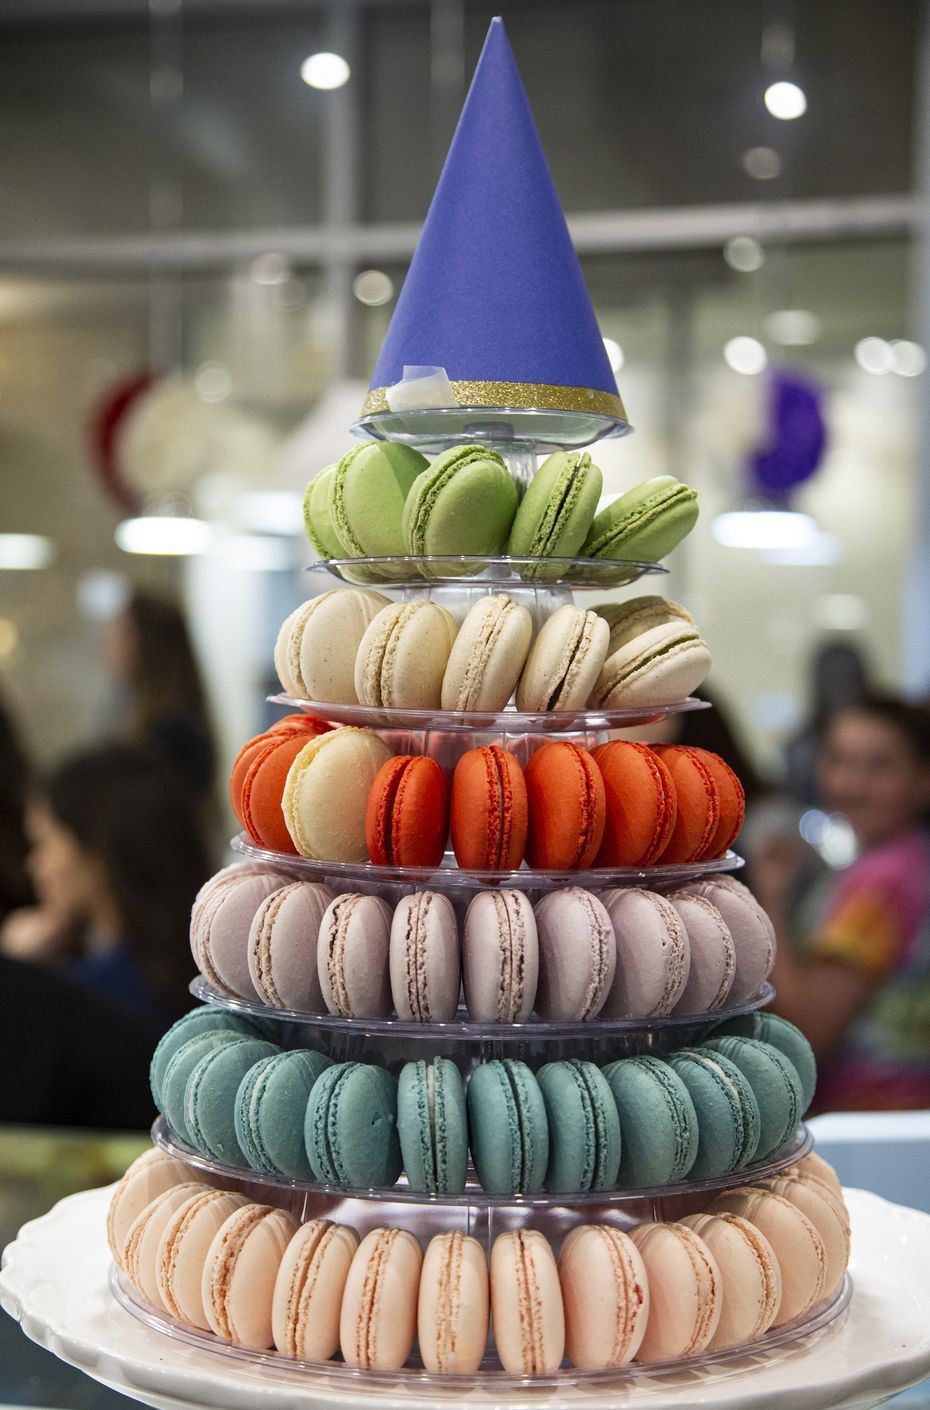 Macarons were on display at Bisous Bisous Patisserie's fifth anniversary celebration in February.